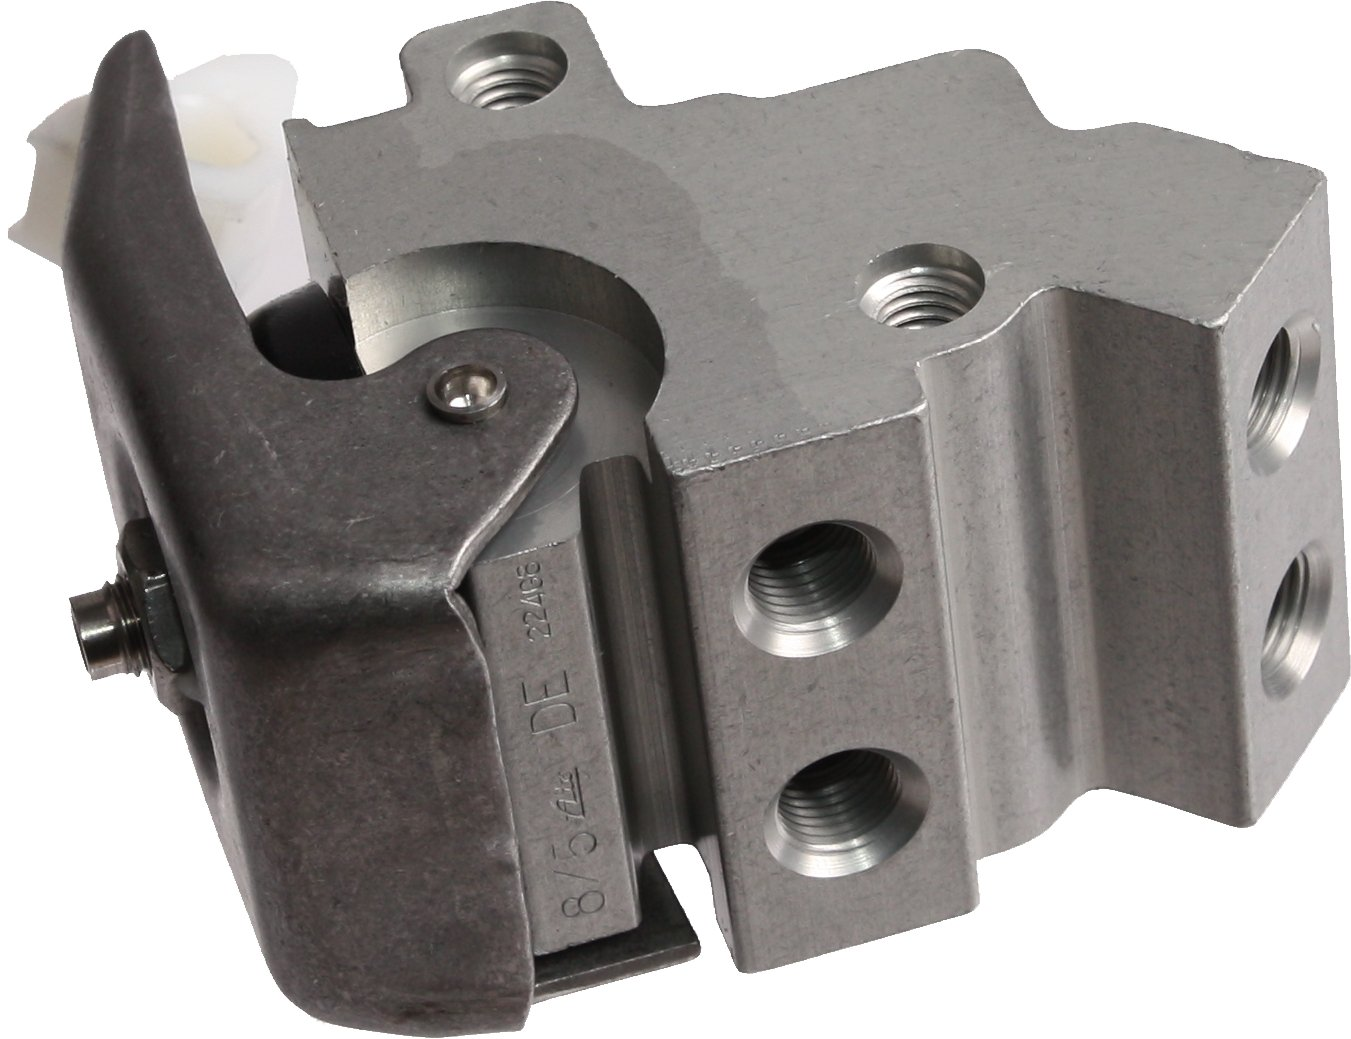 ABS 43979-Regolatore freno ABS All Brake Systems bv